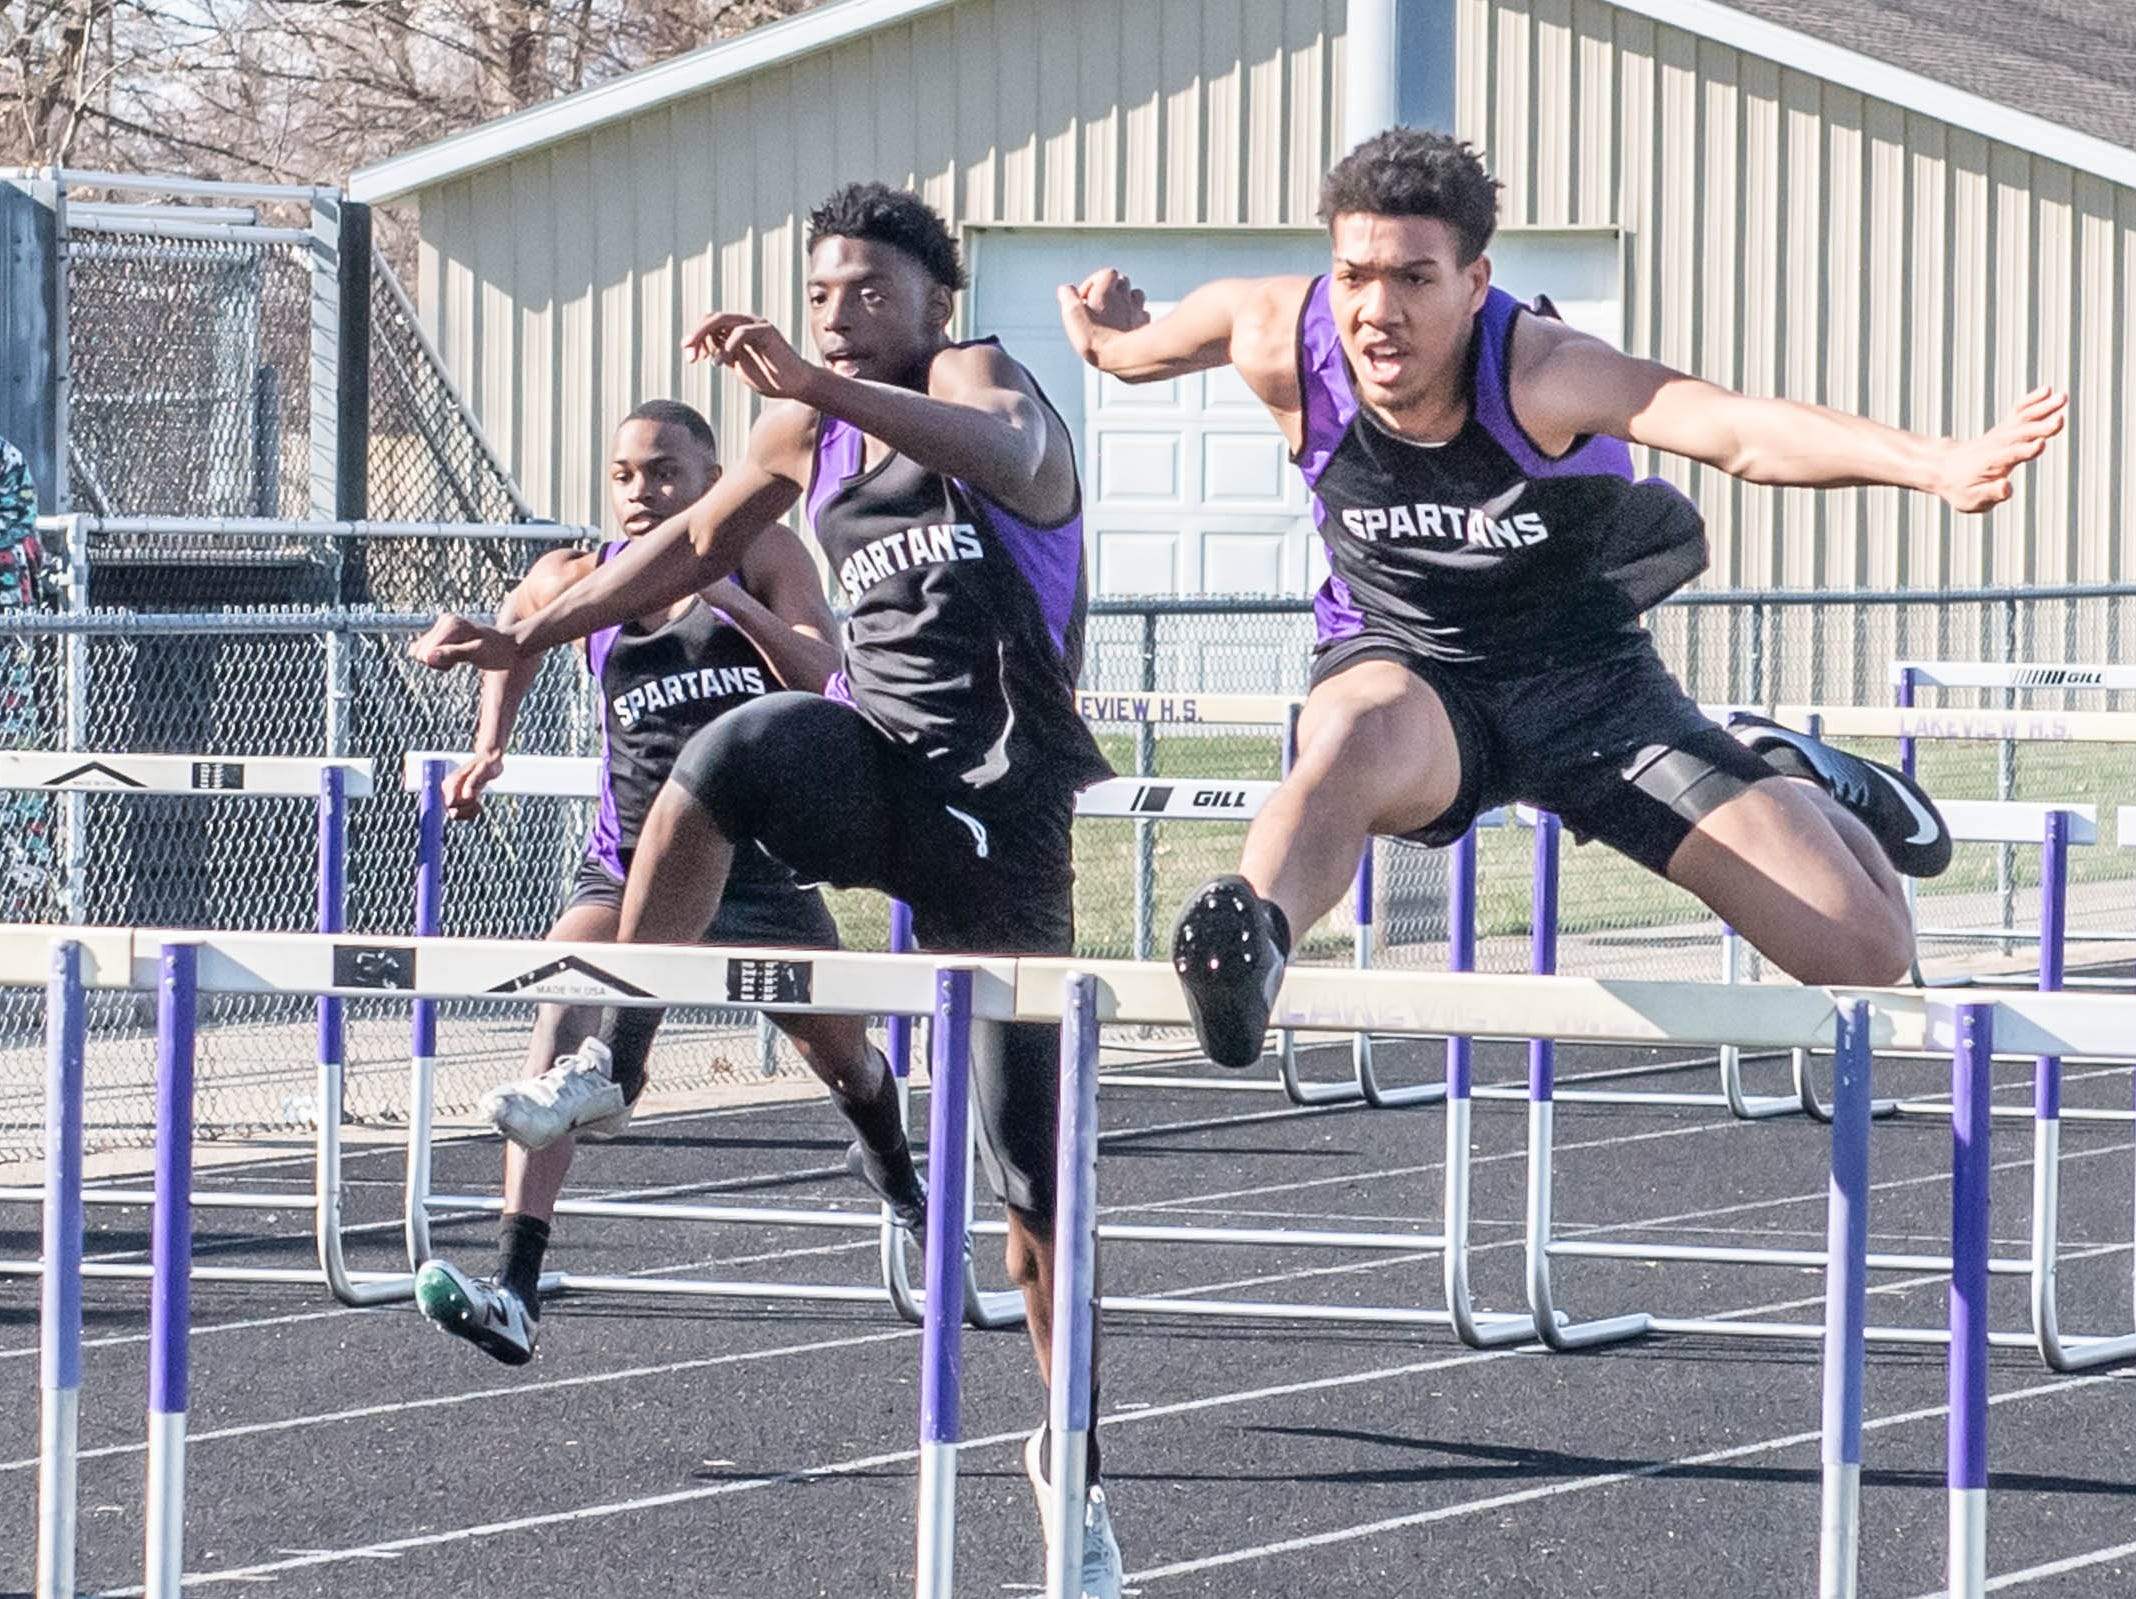 Lakeview runners compete at Lakeview High School during a dual meet held on 4/9/19.